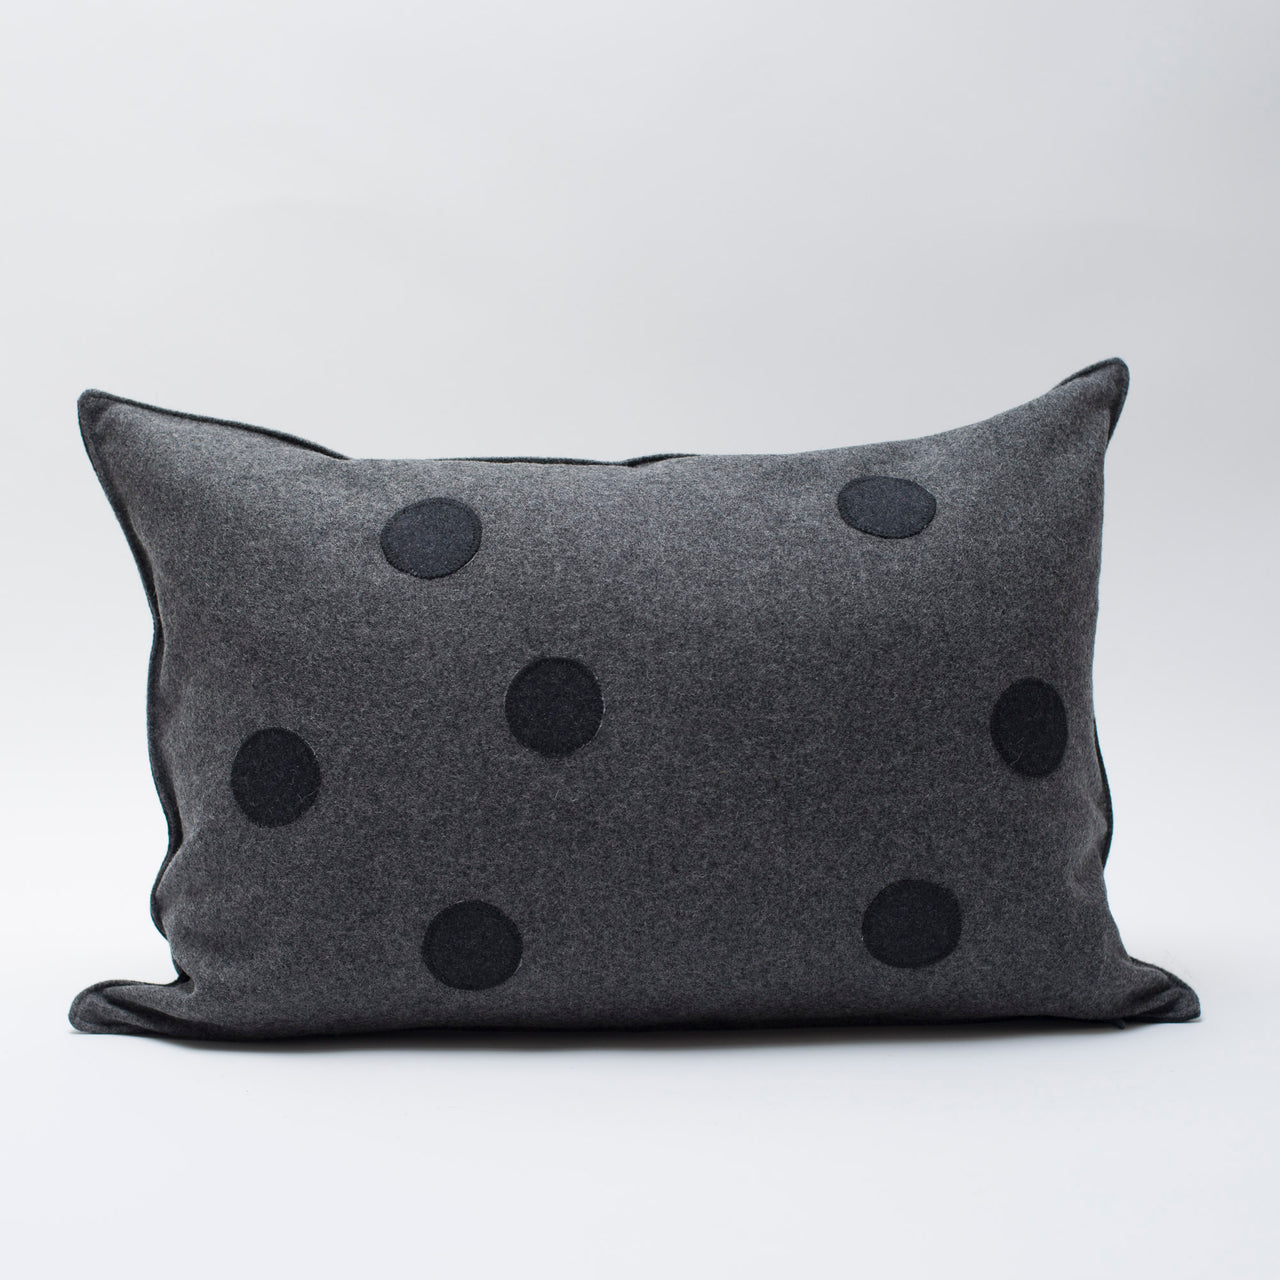 applique wool pillows- black and grey dots